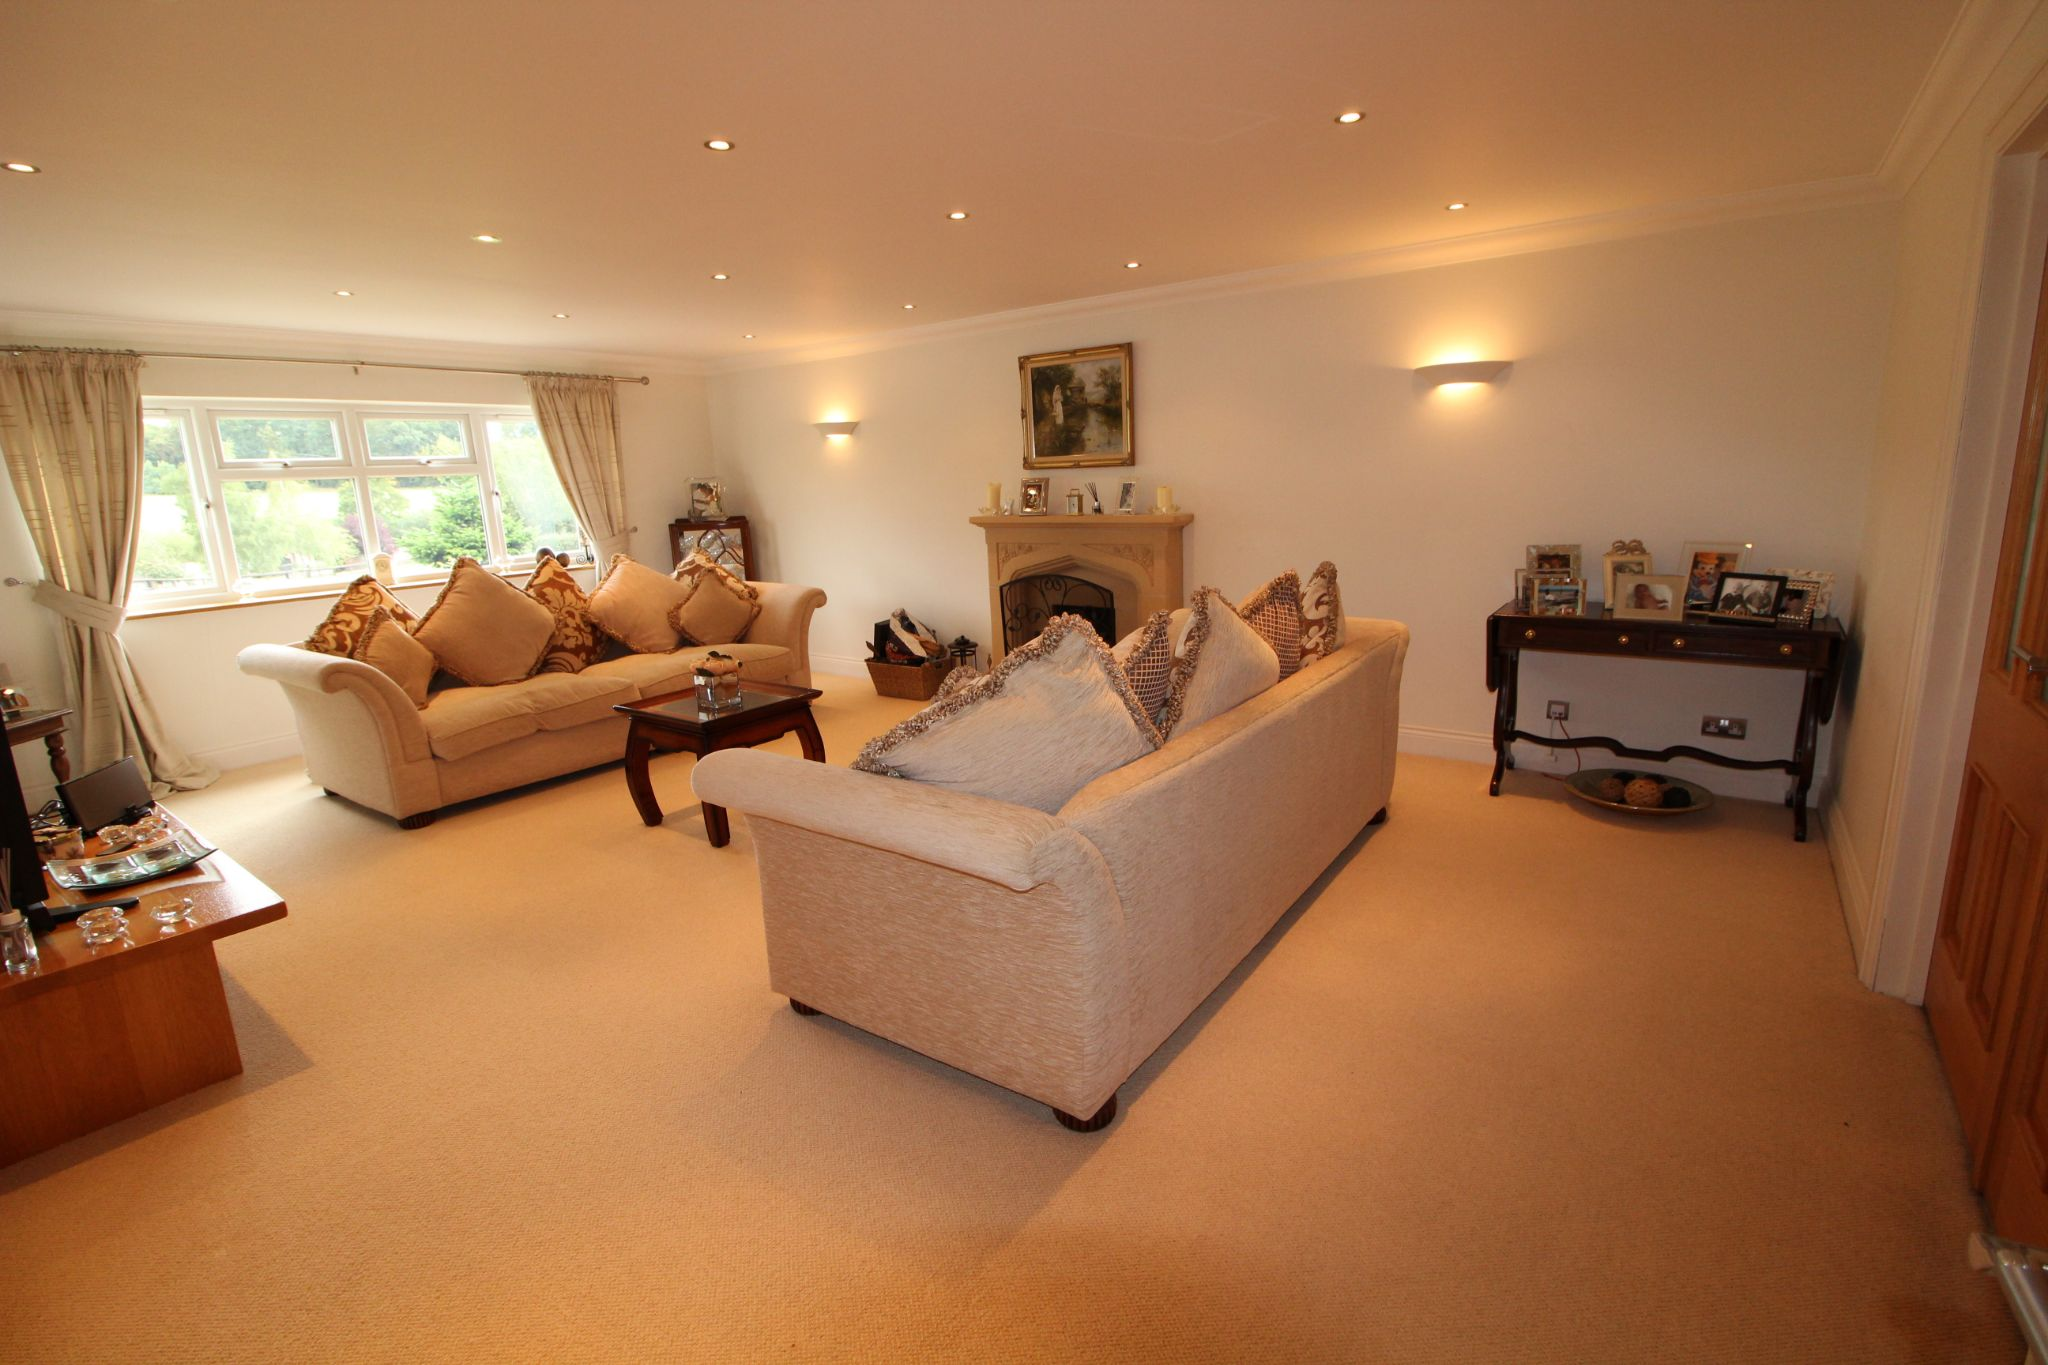 5 bedroom detached house SSTC in North Mymms - Photograph 6